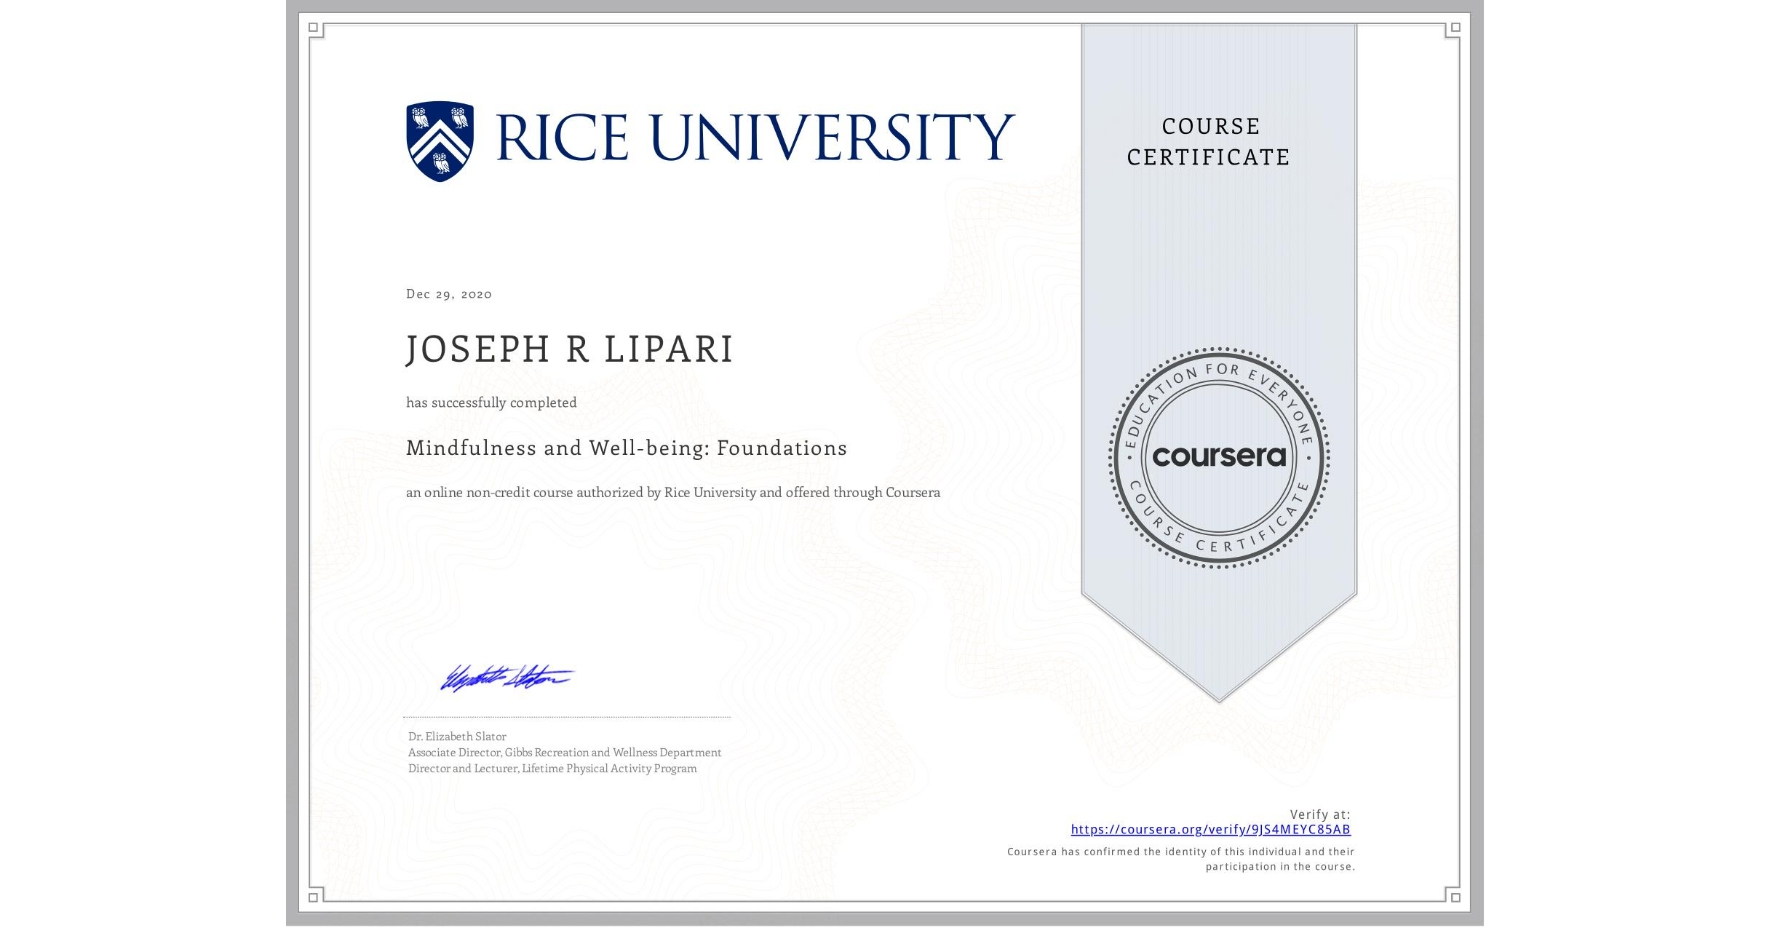 View certificate for JOSEPH R  LIPARI, Foundations of Mindfulness, an online non-credit course authorized by Rice University and offered through Coursera